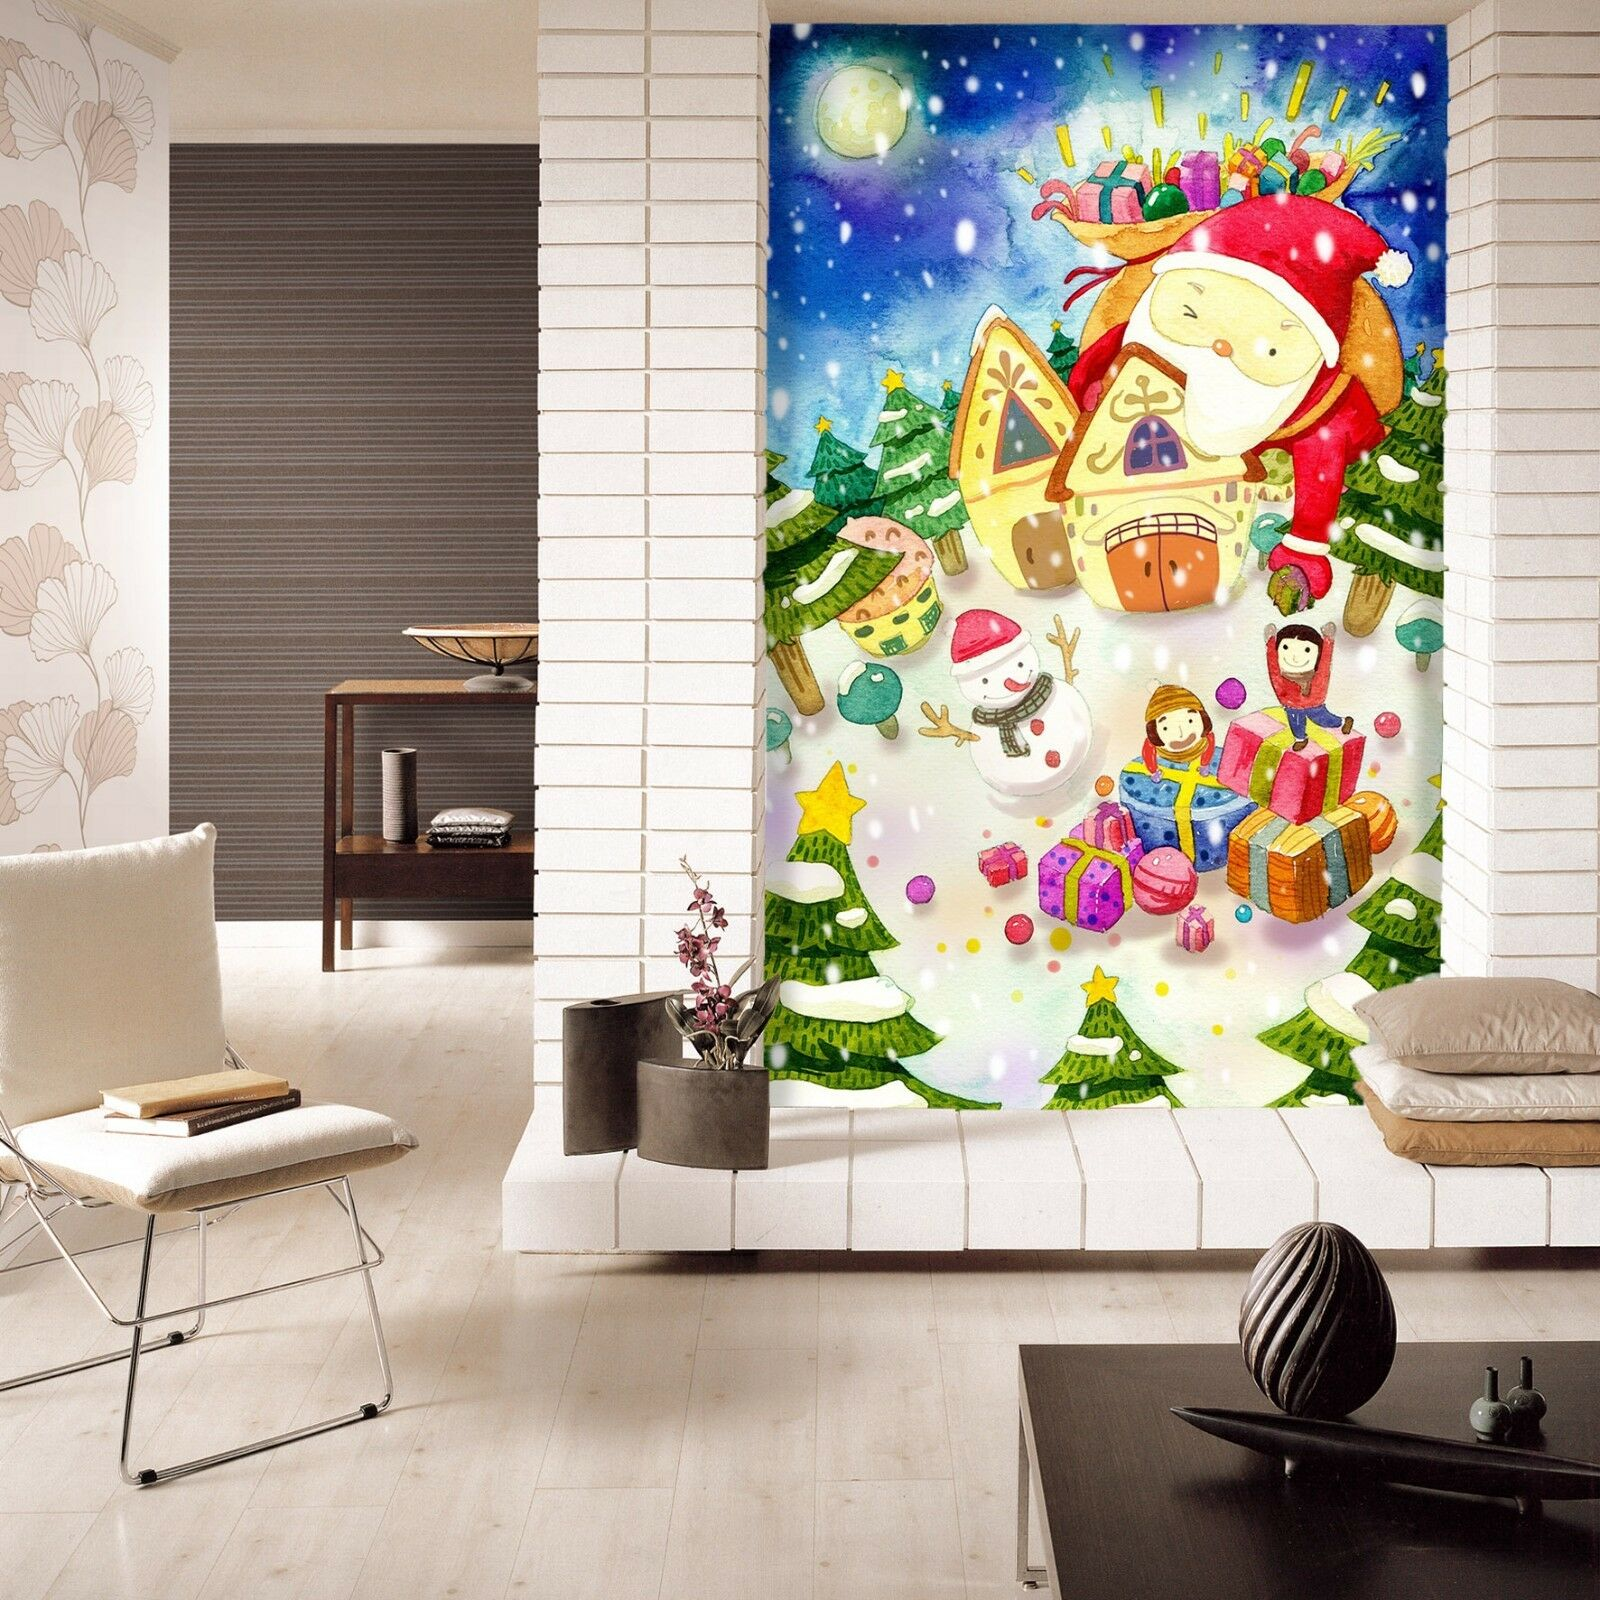 3d Fototapete Nashorn Shop Makes Buying And Selling 3d Mond Weihnachtsmann 6 Tapete Tapete